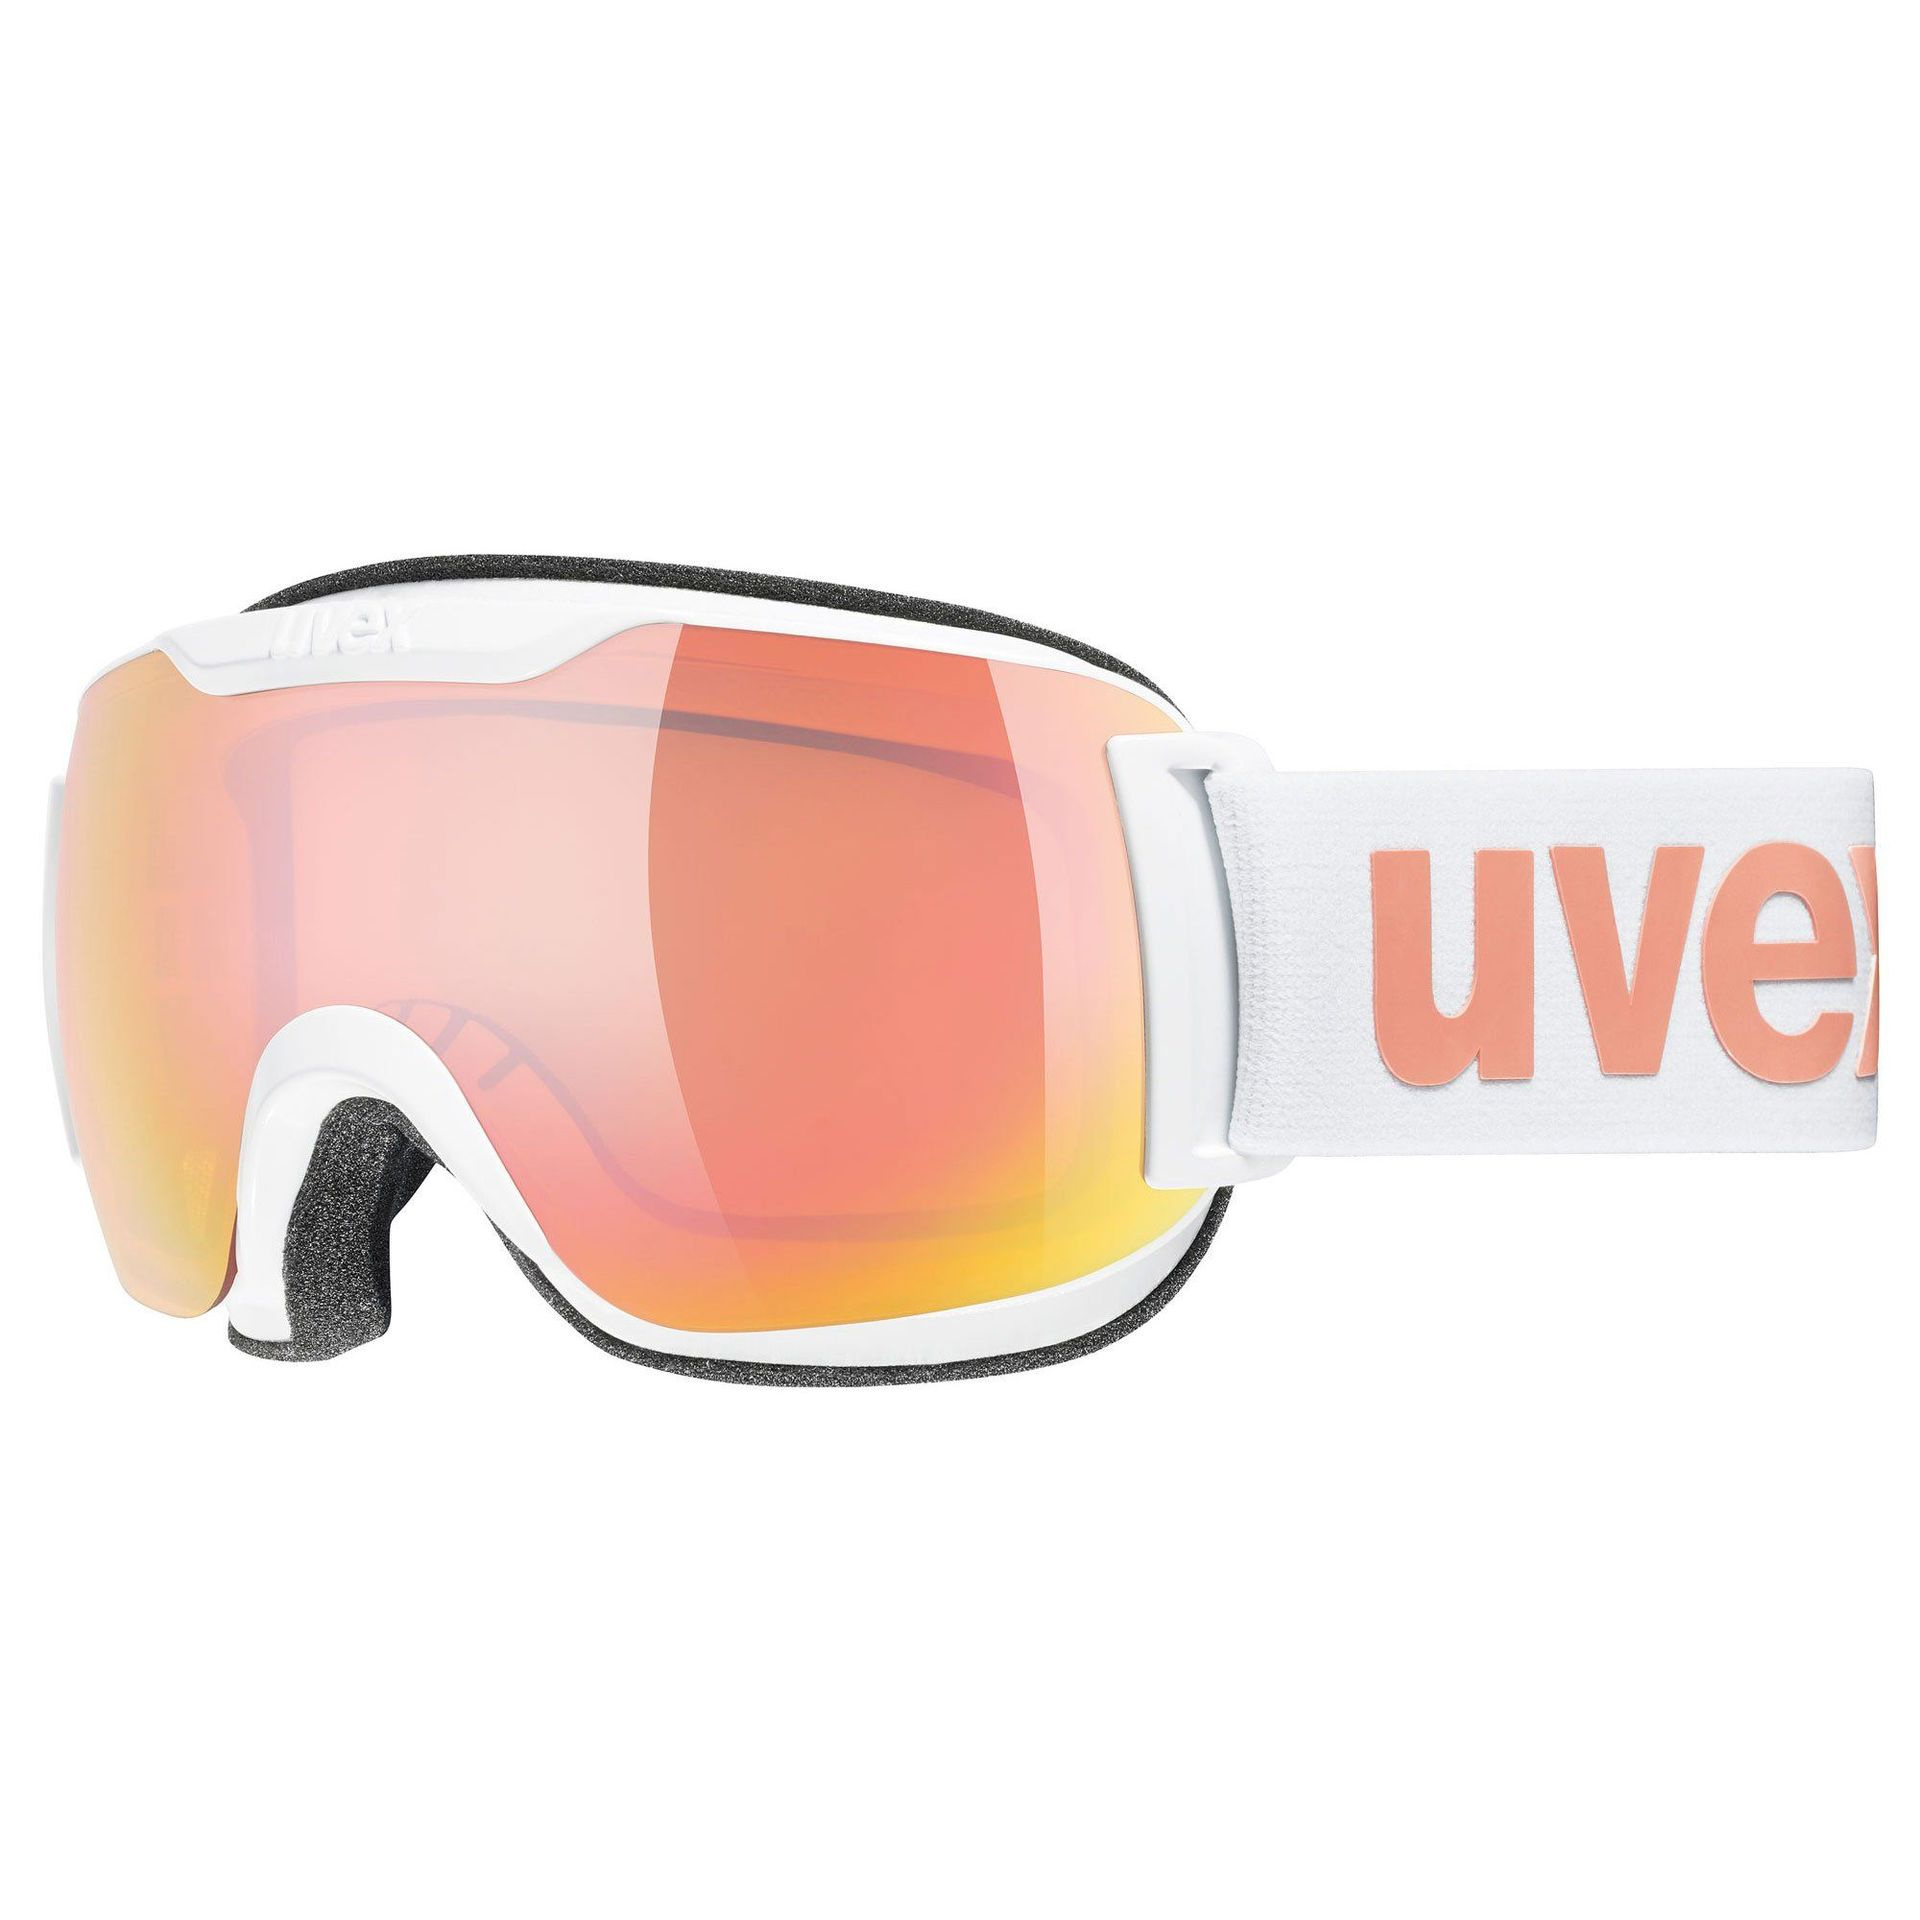 GOGLE UVEX DOWNHILL 2000 S CV WHITE|MIRROR ROSE COLORVISION ORANGE 55|0|447|1030